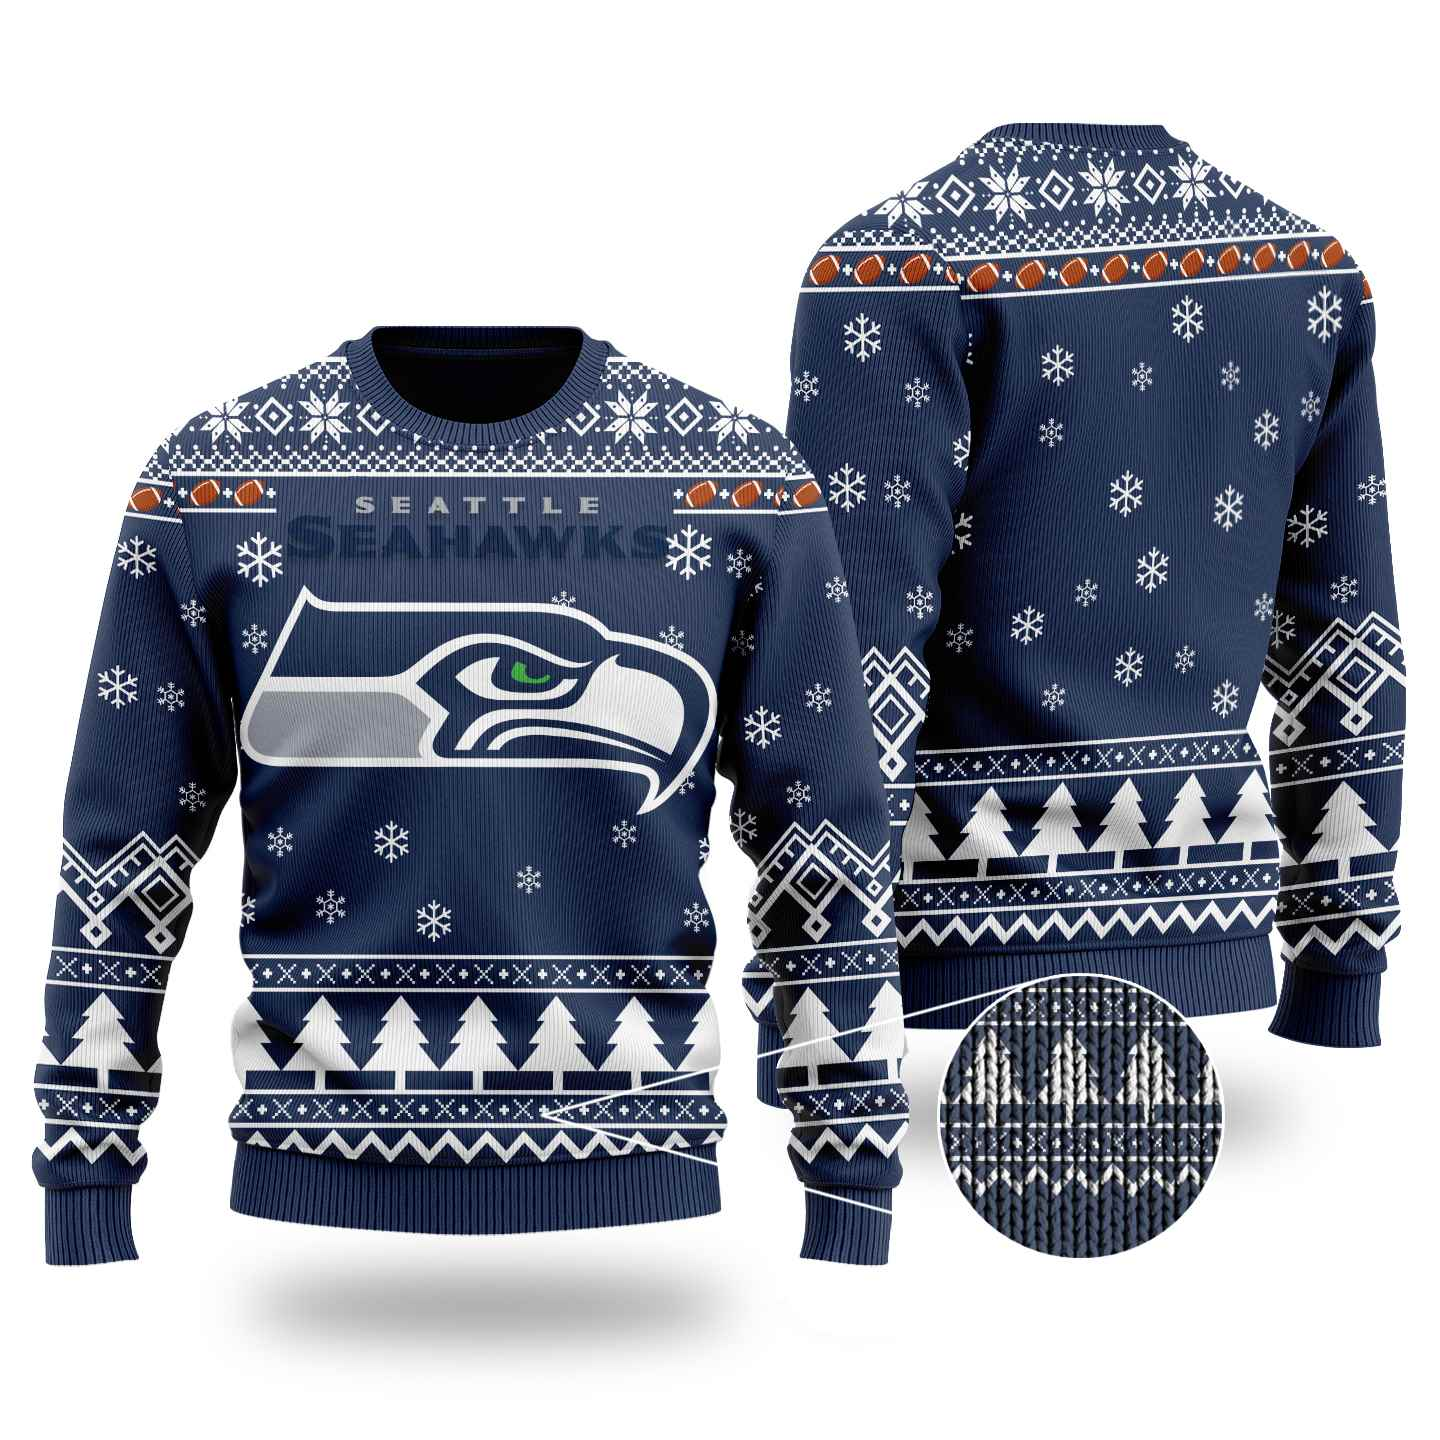 Nfl Seattle Seahawks Chibi Ugly Christmas Sweater Wool Material